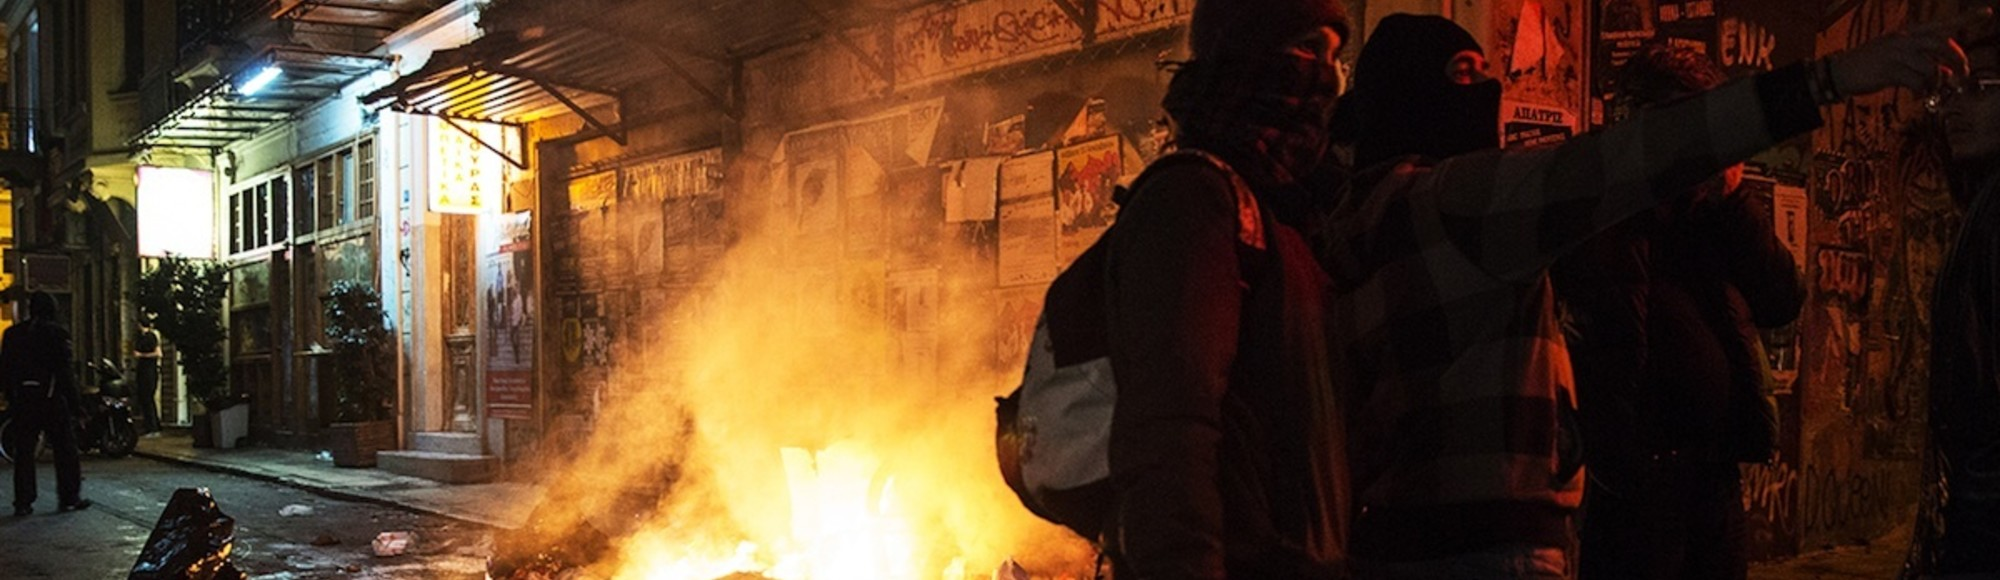 Greece's Young Anarchists - Part Two